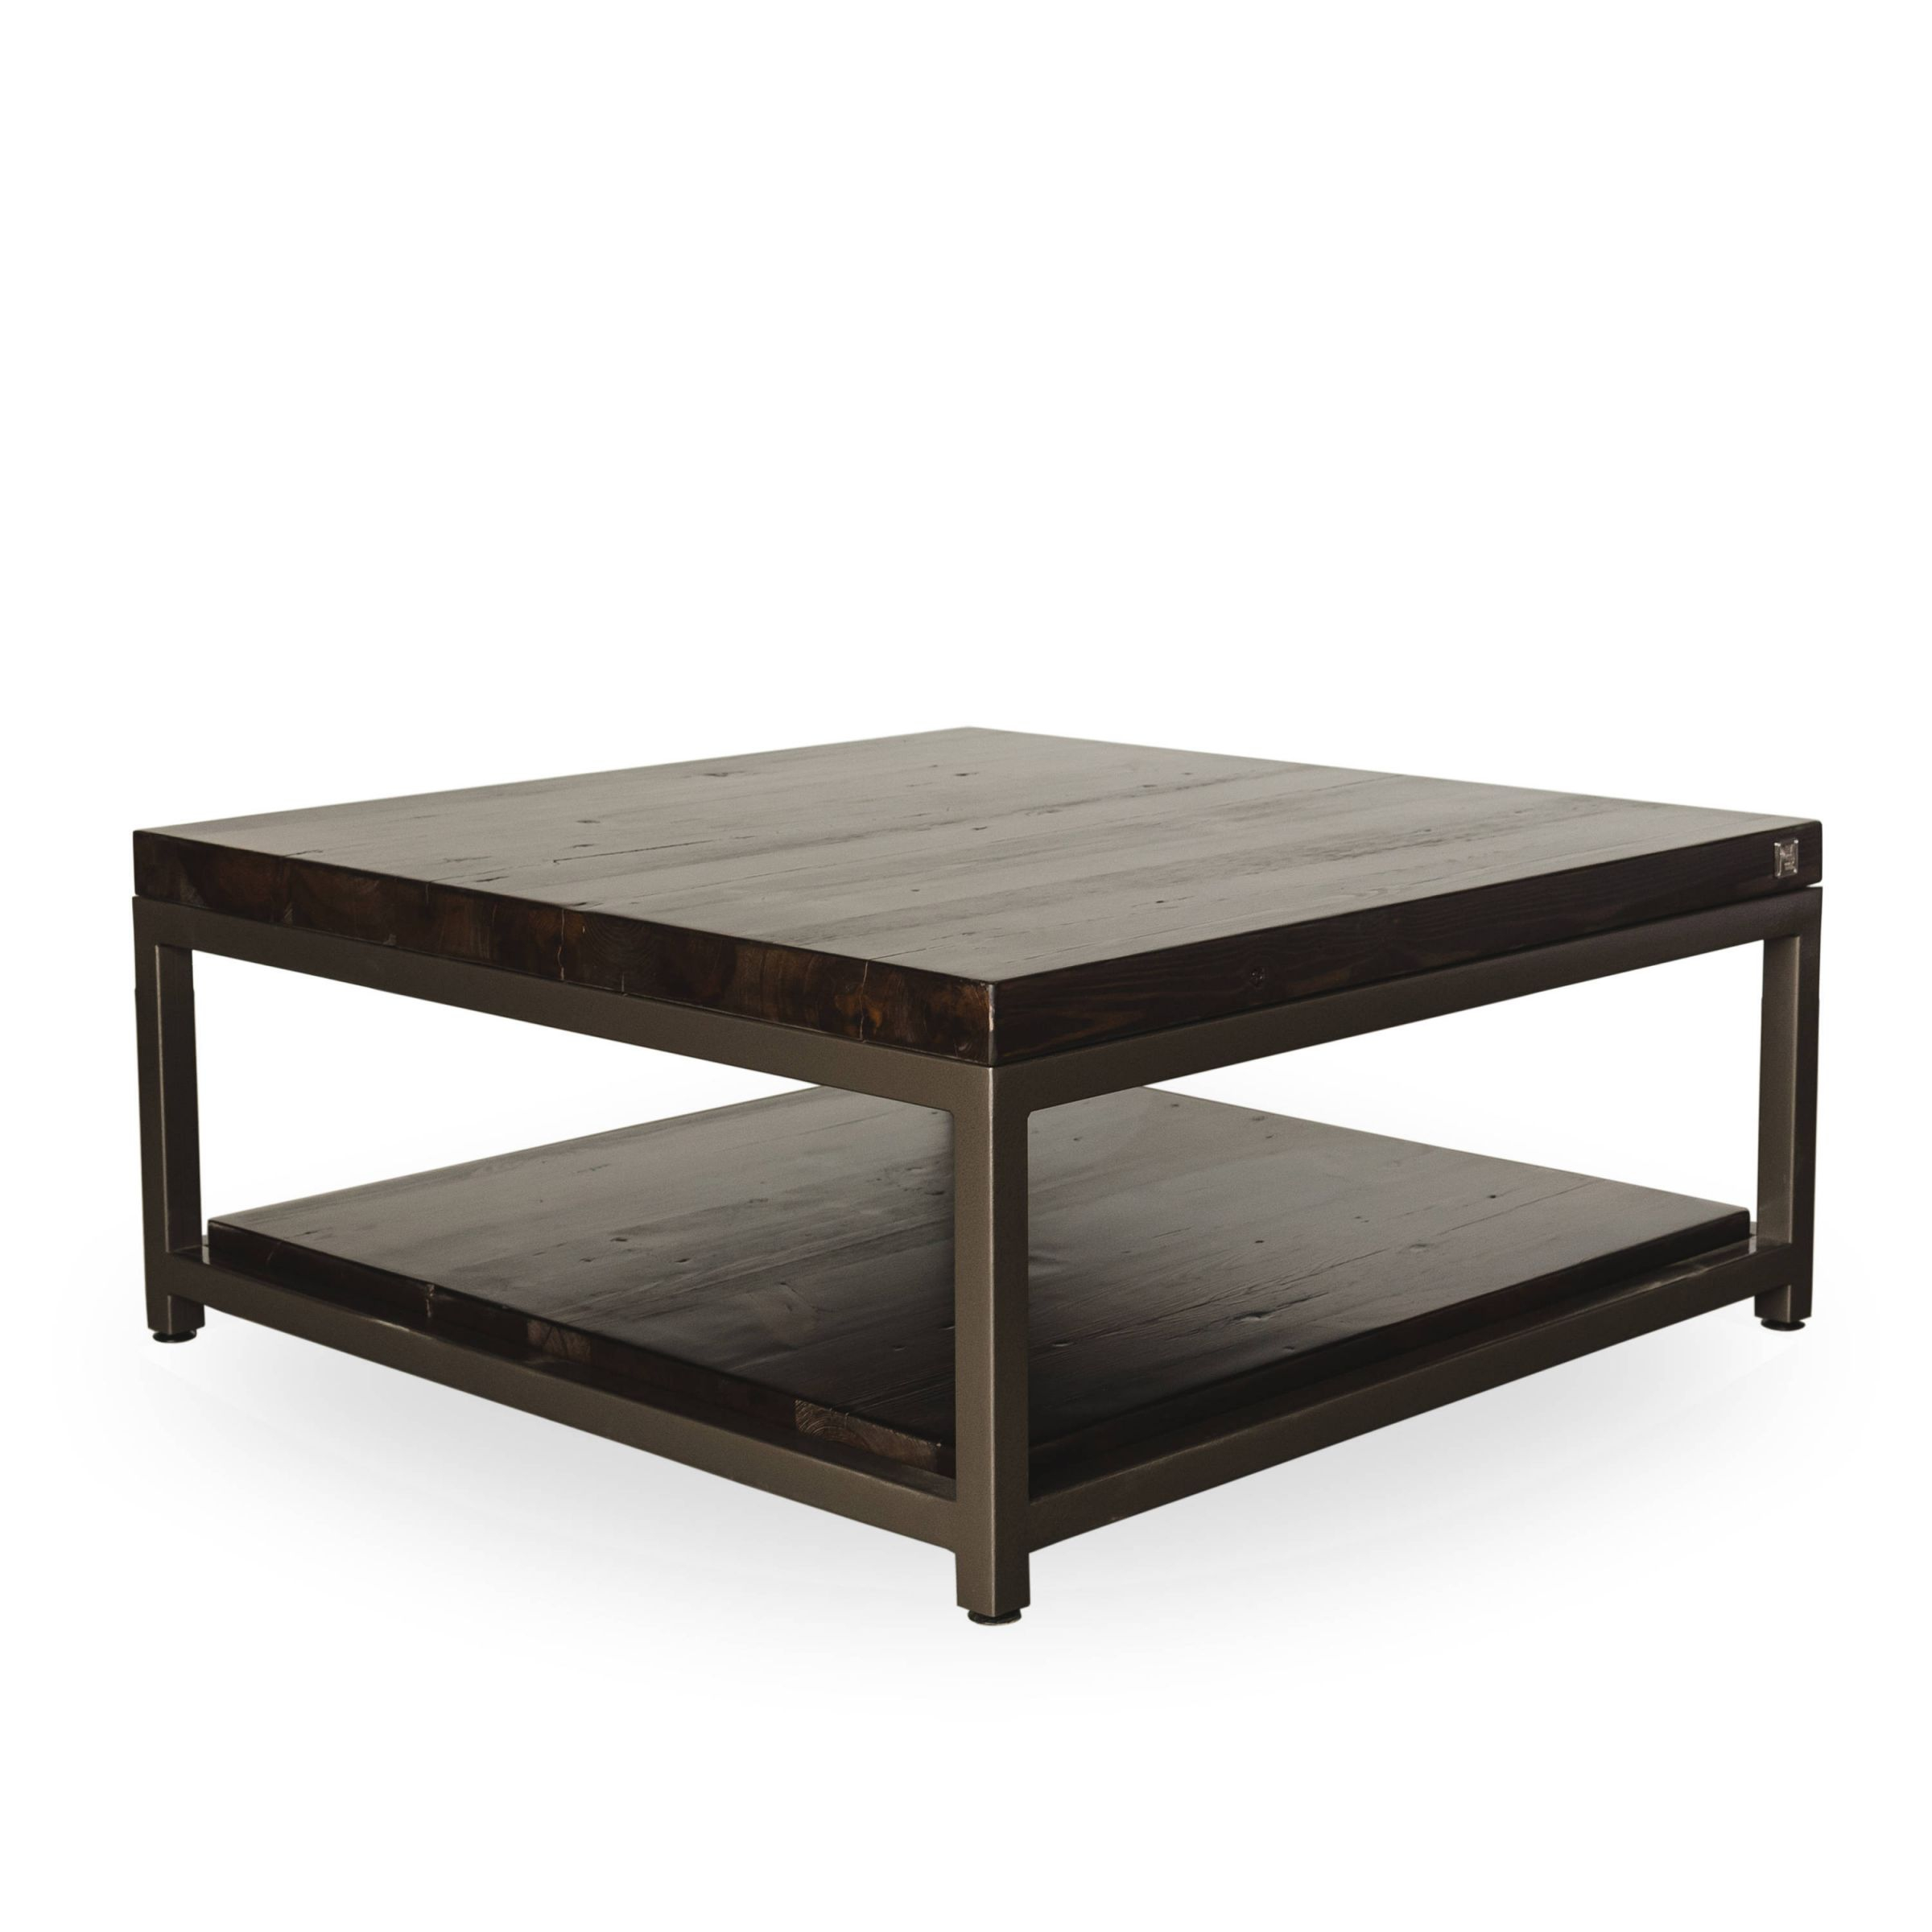 Square Coffee Table Or Rectangle Coffee Table With Storage, Reclaimed Wood  Top And Shelf. Choose Size, Thickness, And Finish. with regard to Elegant Square Coffee Table With Storage